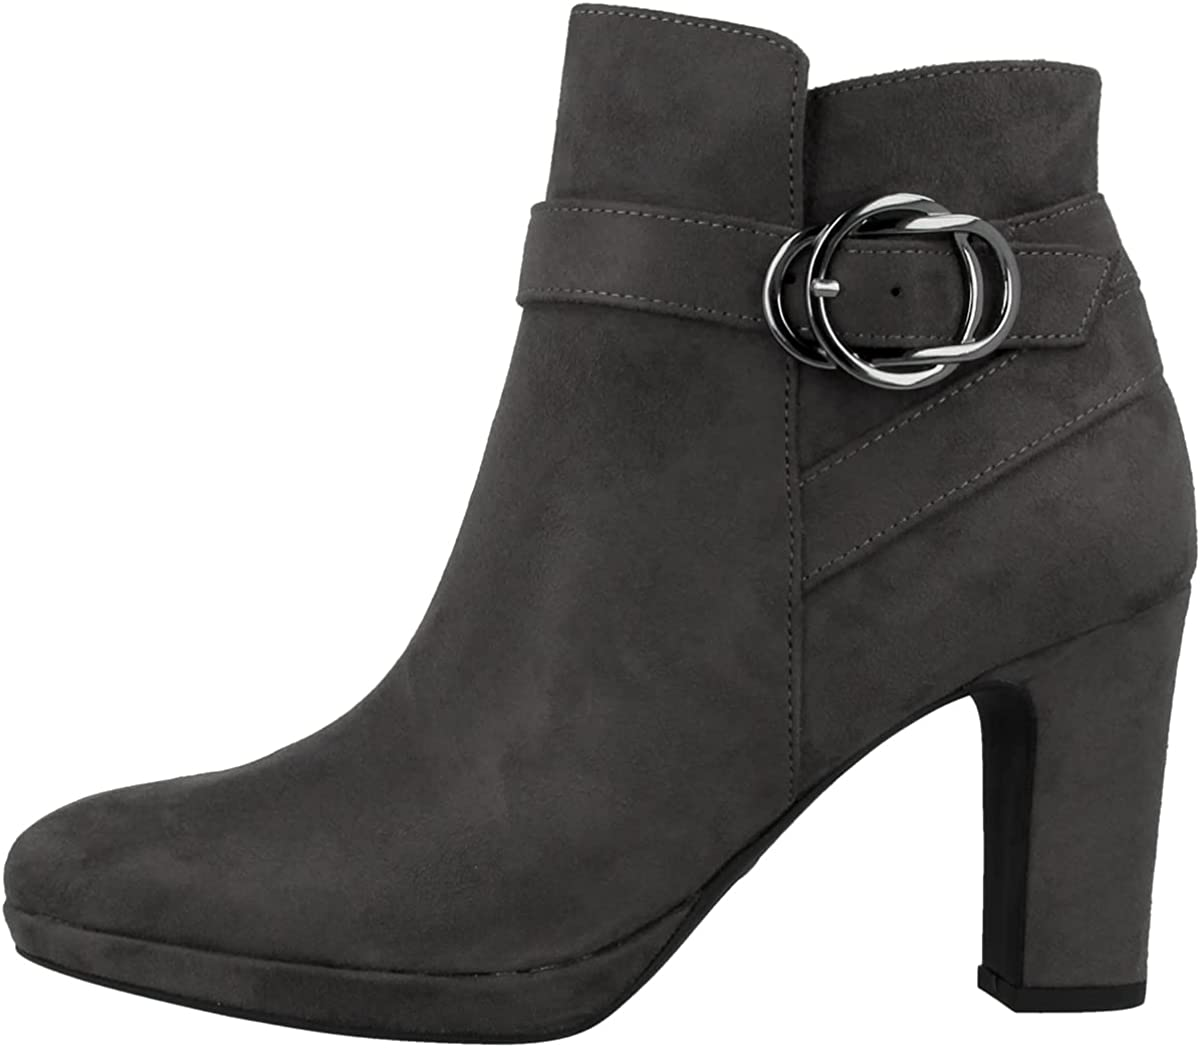 specialty shop Tamaris Women's Our shop most popular Winter Boots Ankle